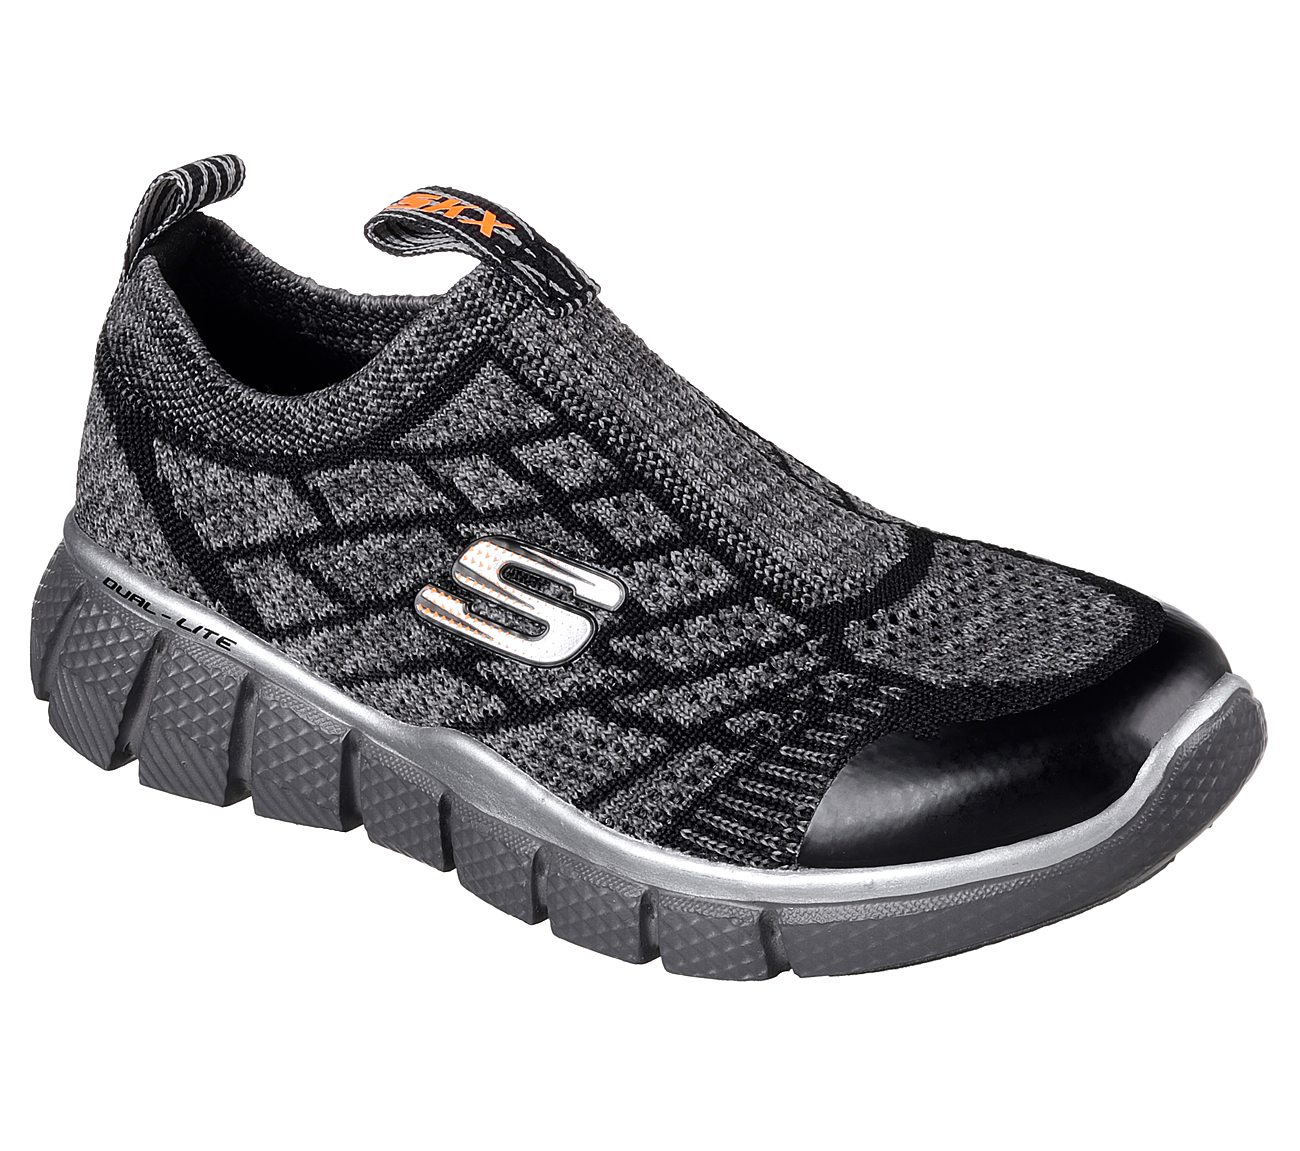 Buy SKECHERS Equalizer 2.0 - Well